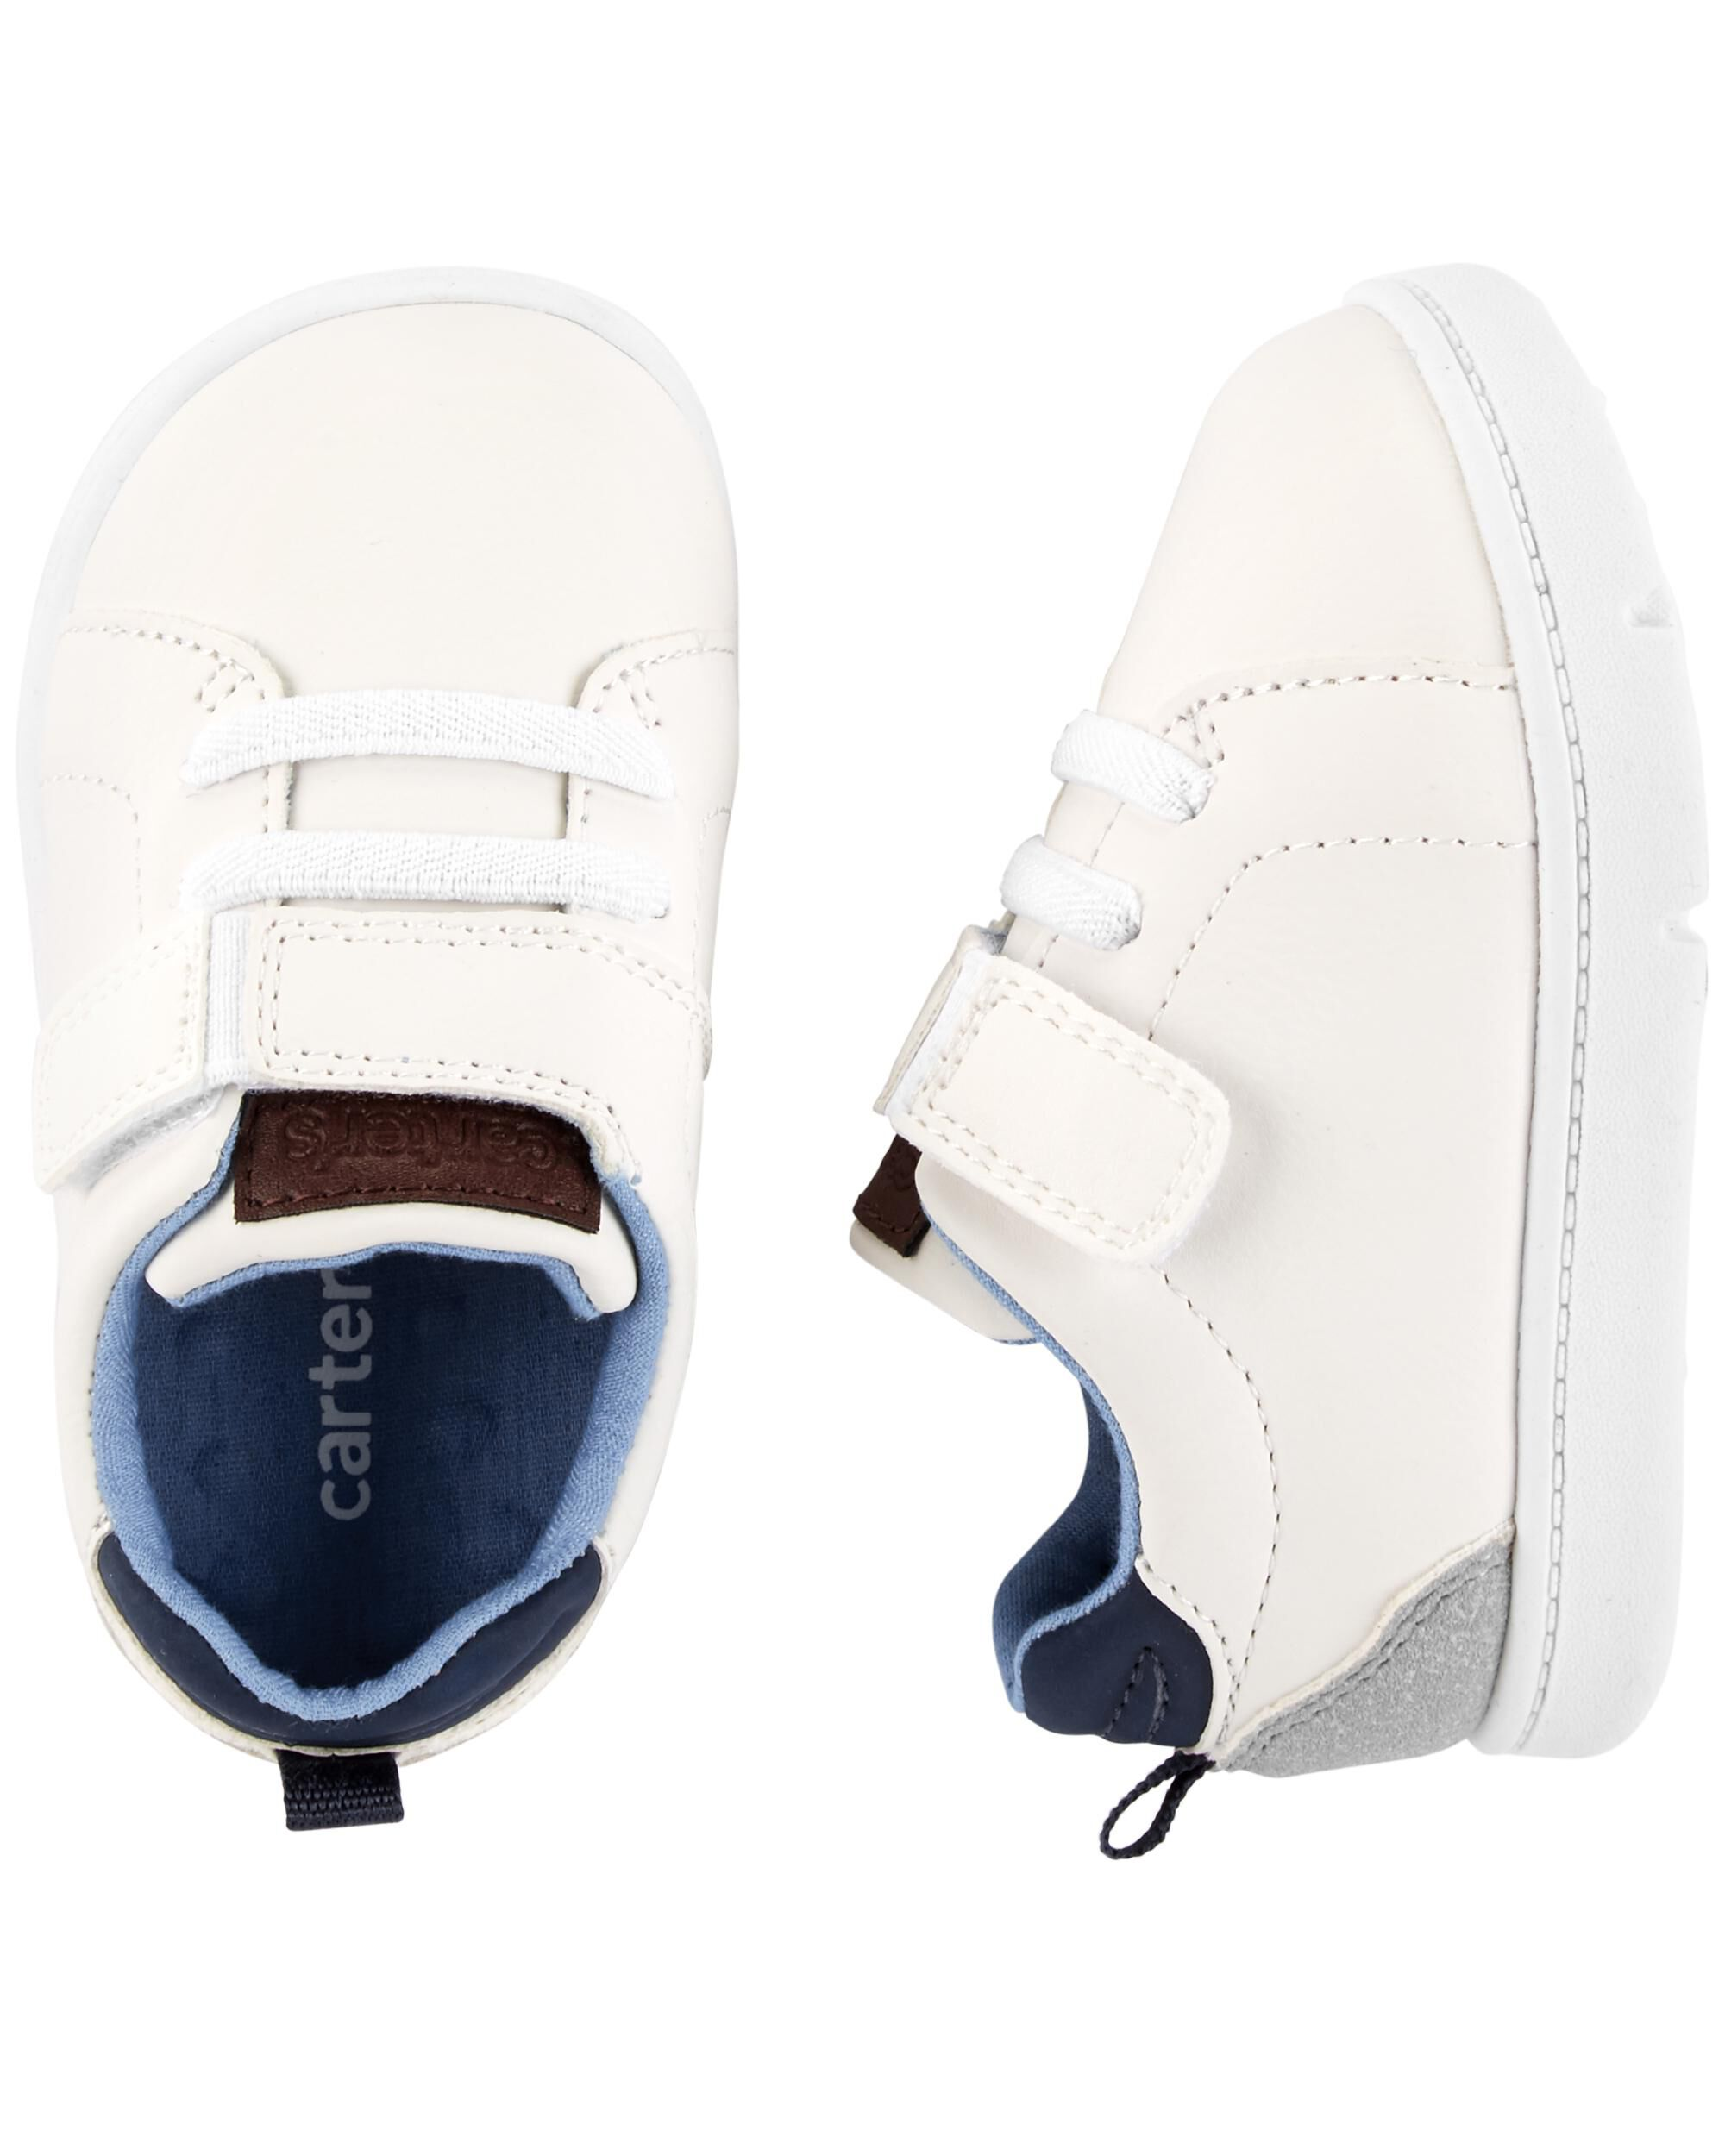 Carter's Every Step Sneakers   carters.com